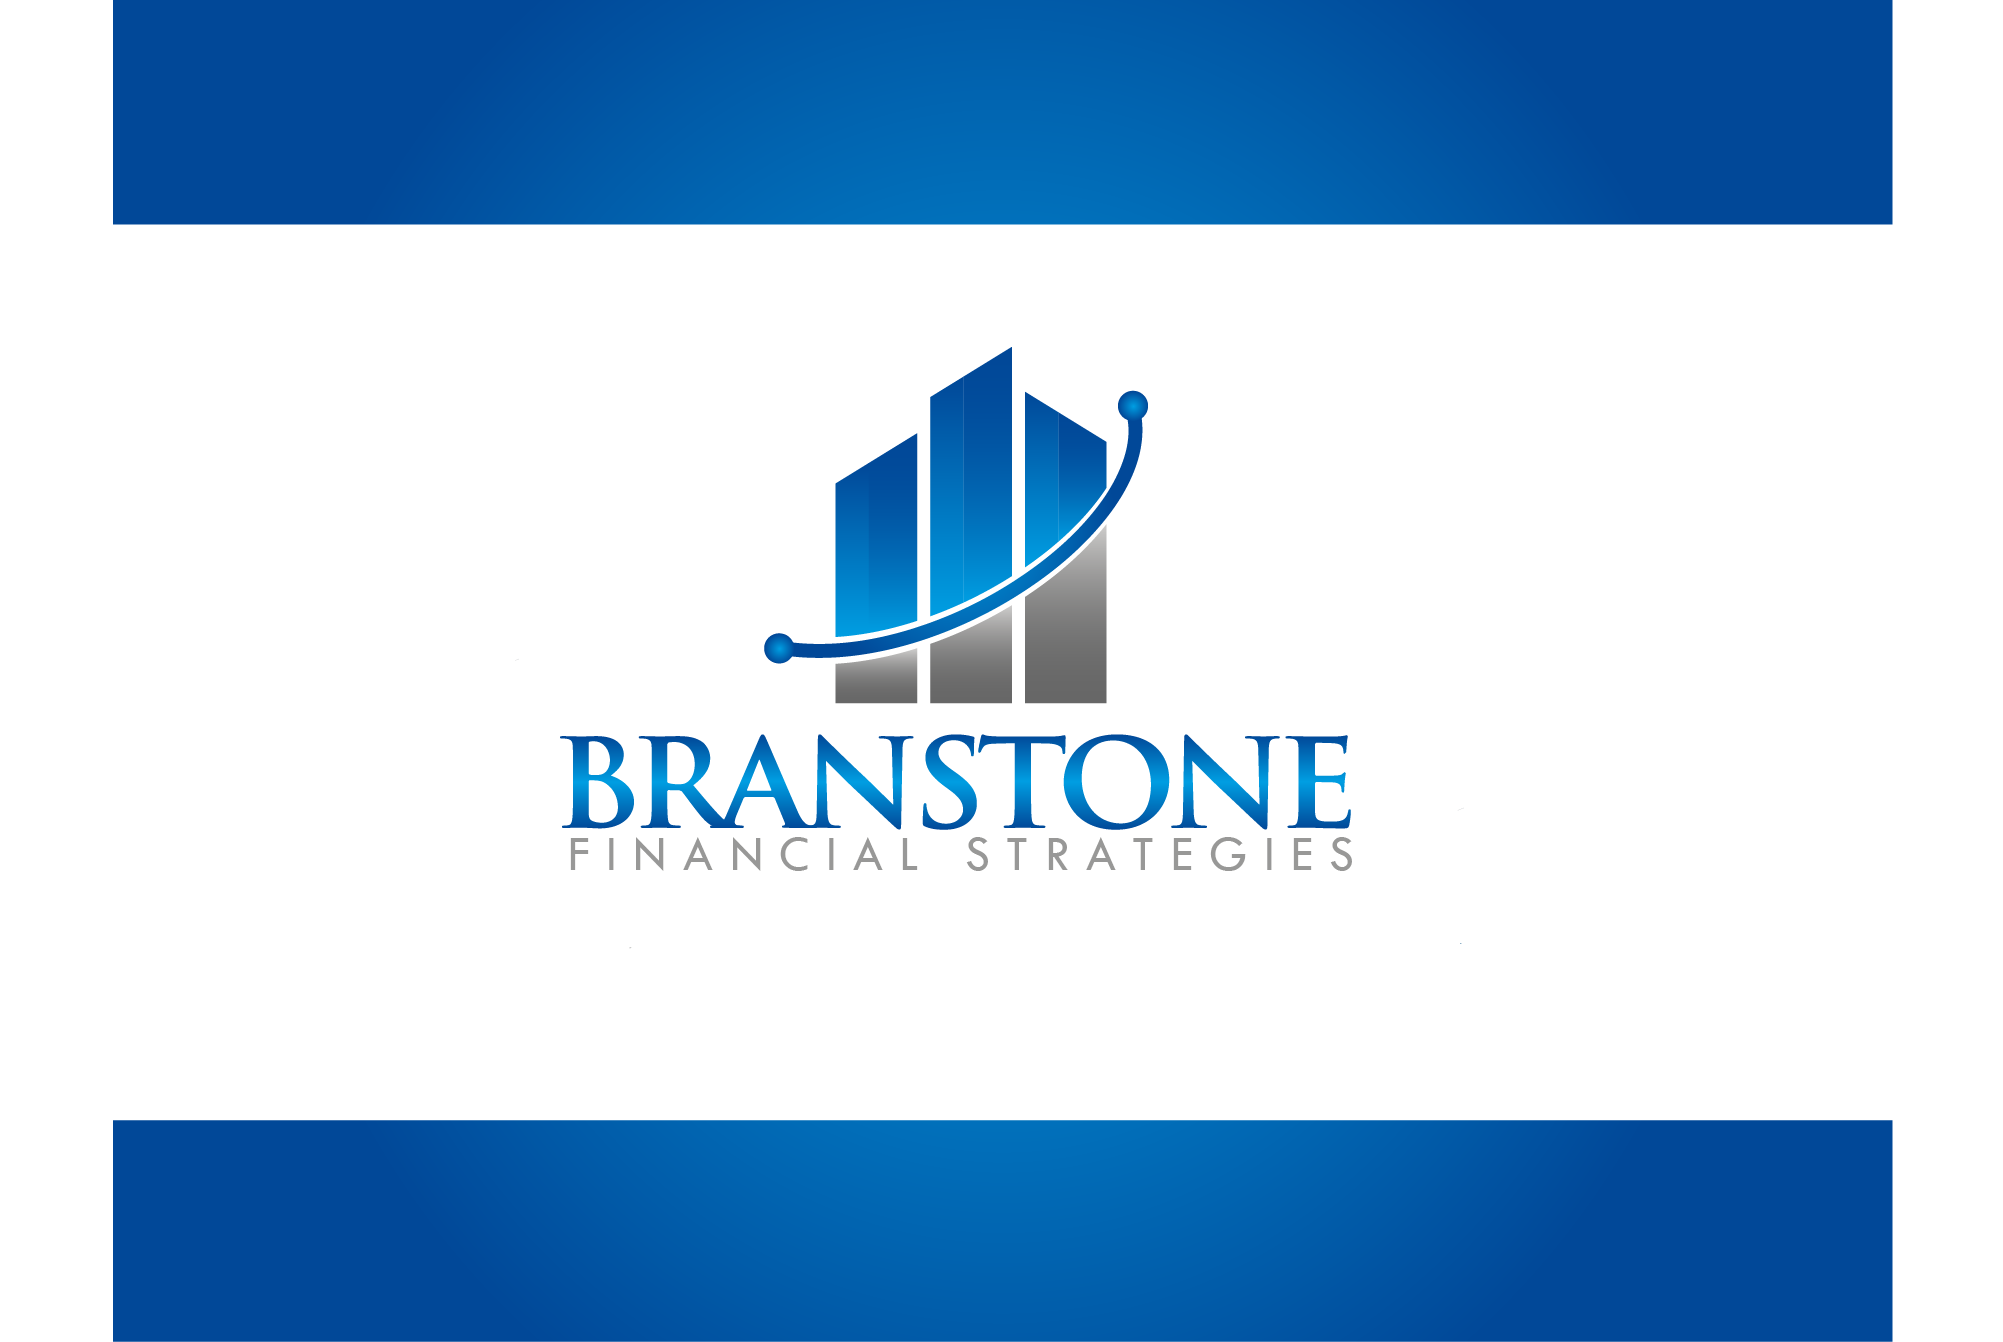 Logo Design by Ryan Hortizuela - Entry No. 339 in the Logo Design Contest Inspiring Logo Design for Branstone Financial Strategies.